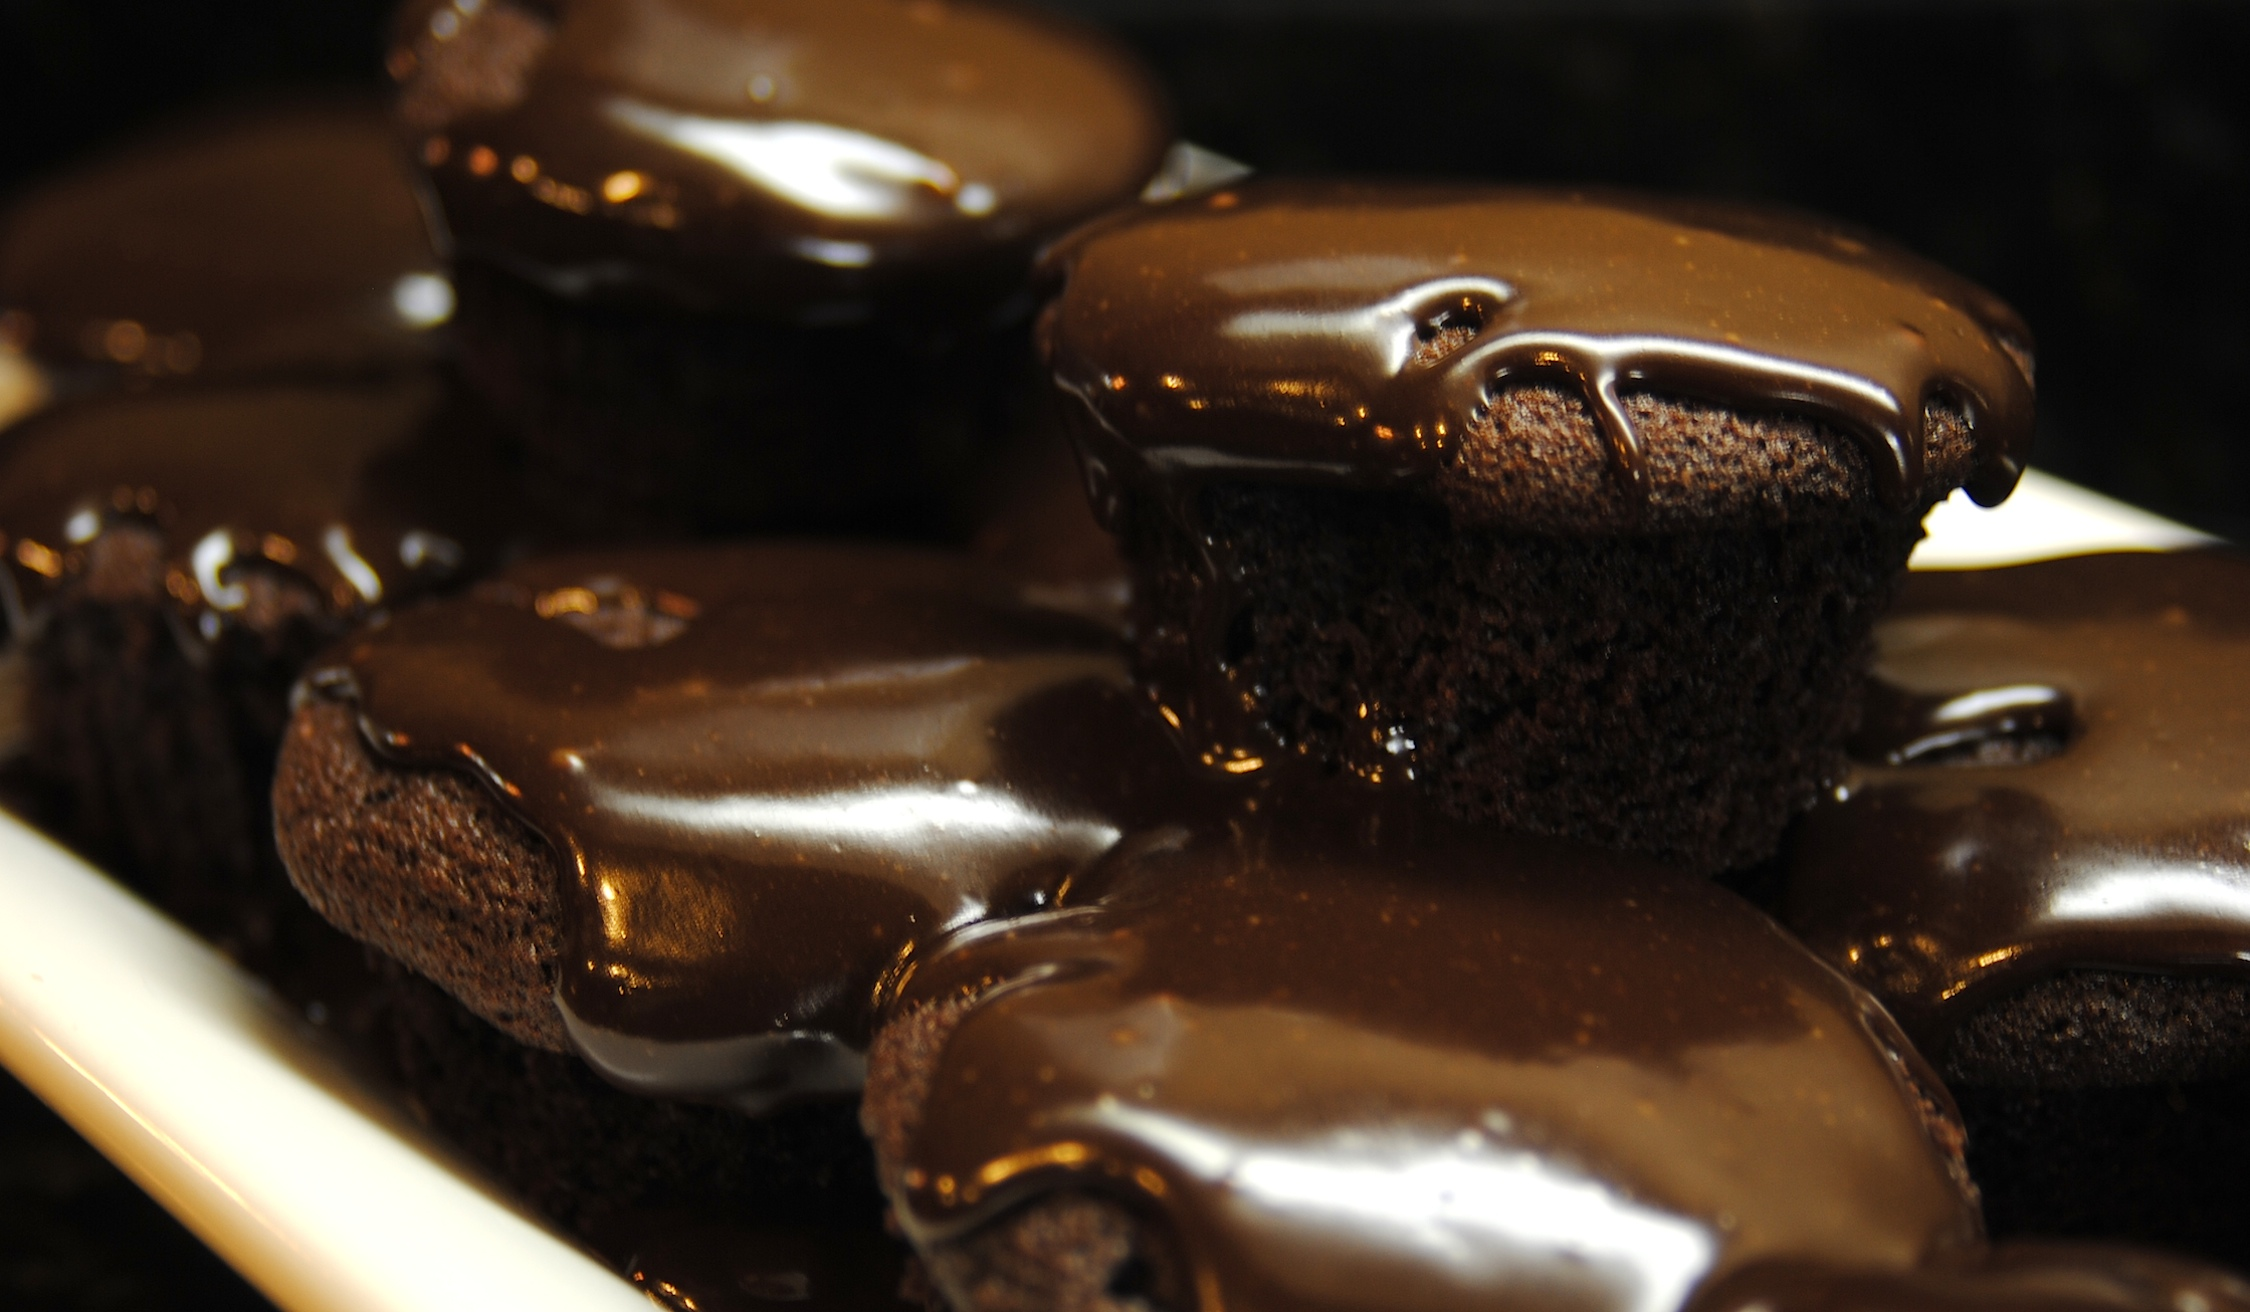 Chocolate Stout Cupcakes with Chocolate Glaze